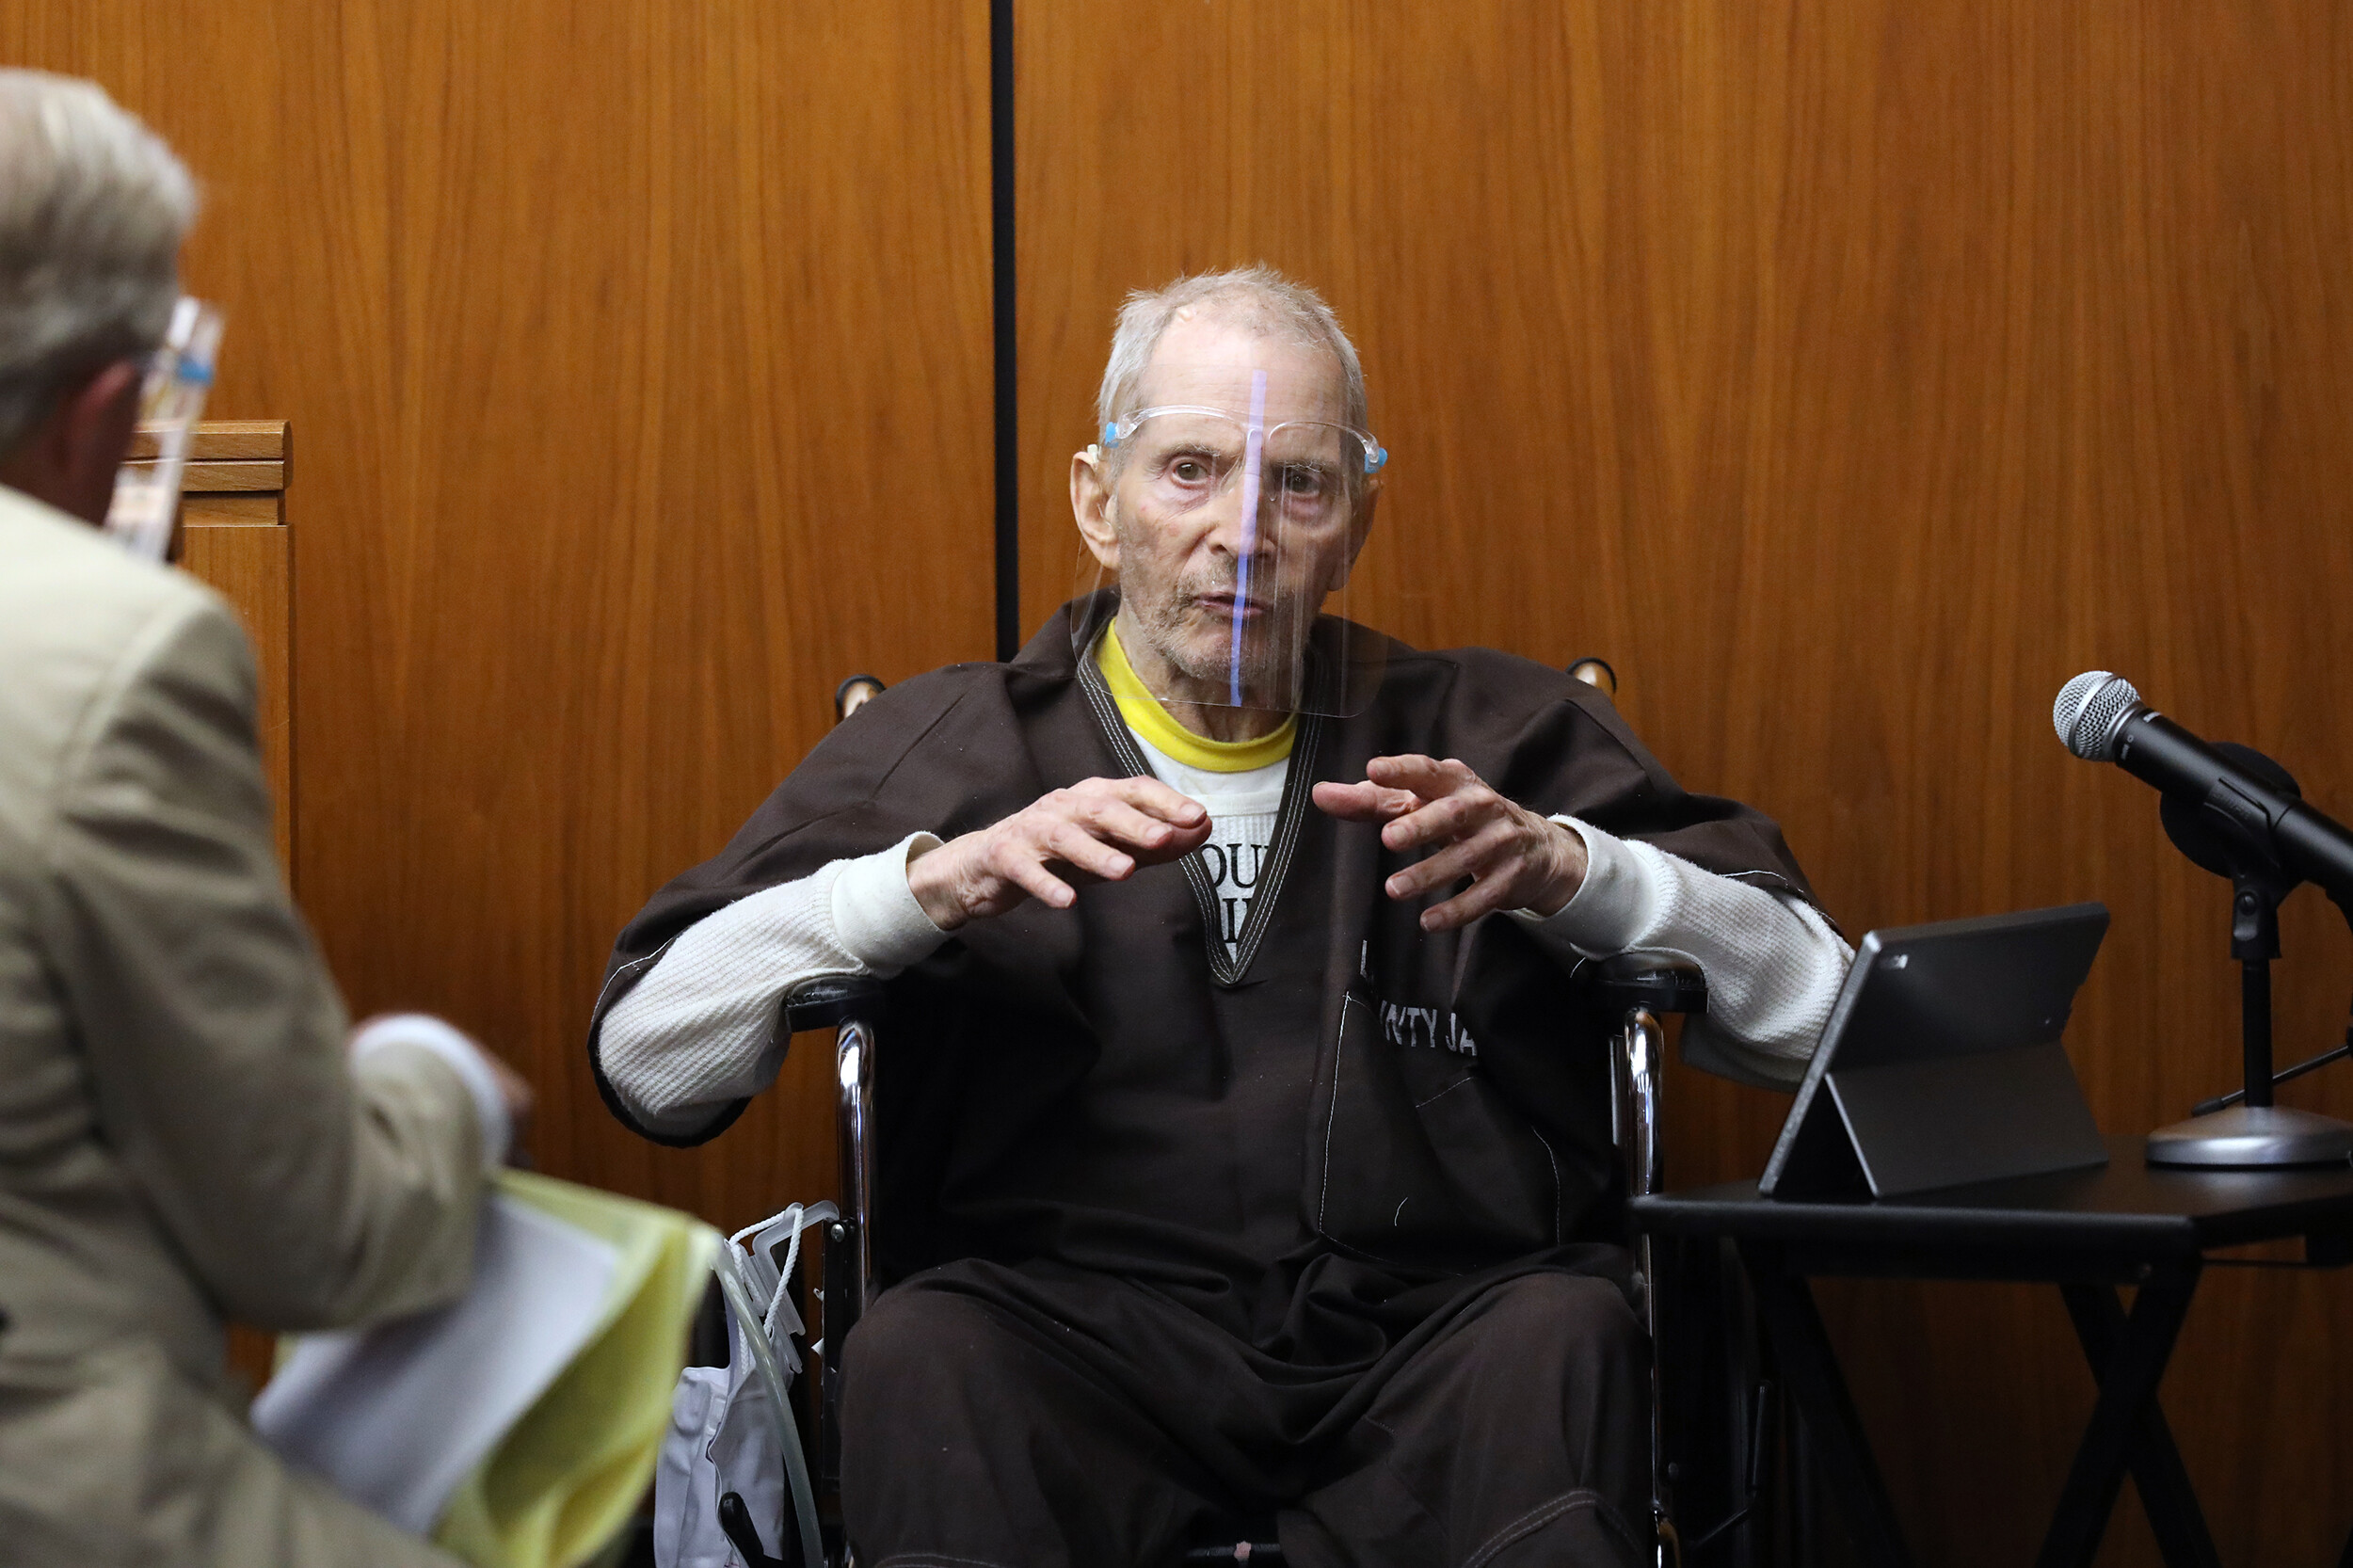 Robert Durst, eccentric figure made infamous in 'The Jinx,' sentenced to life without parole for first-degree murder of best friend